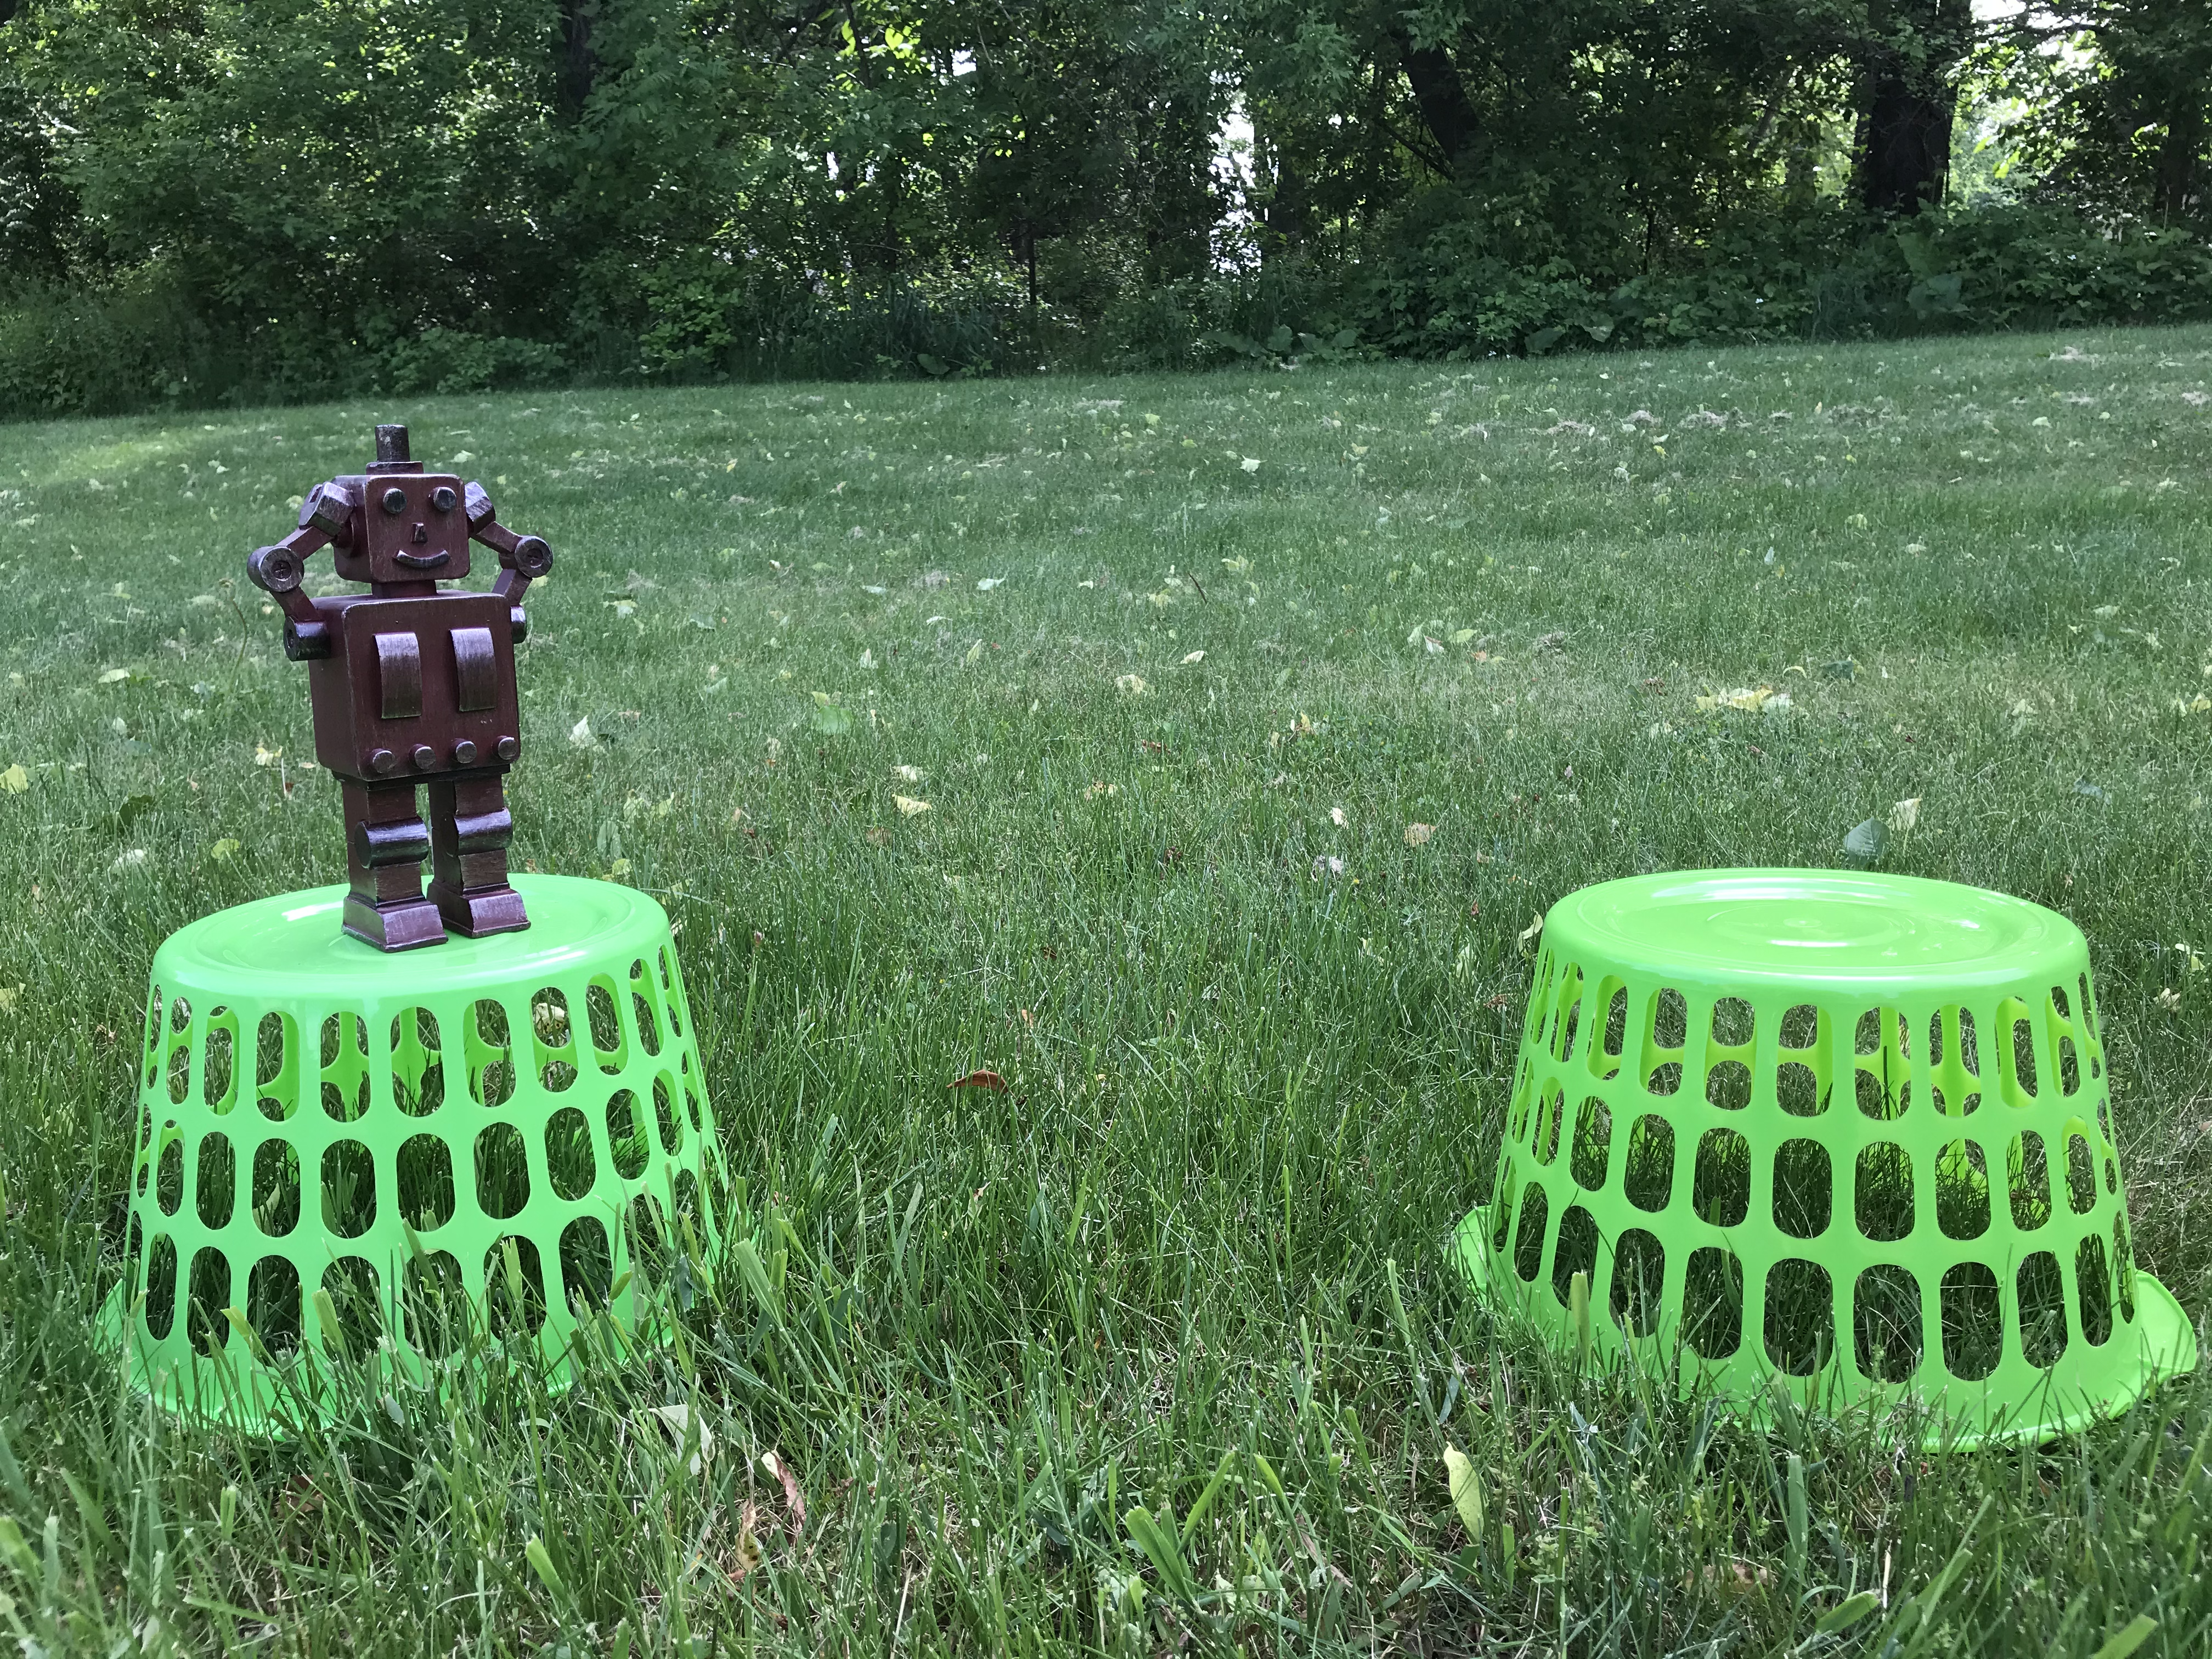 A confused robot toy is pictured on top of an upside-down green basket. Another green basket is about a foot away. Robot's hands are on its head since it cannot cross the gap.